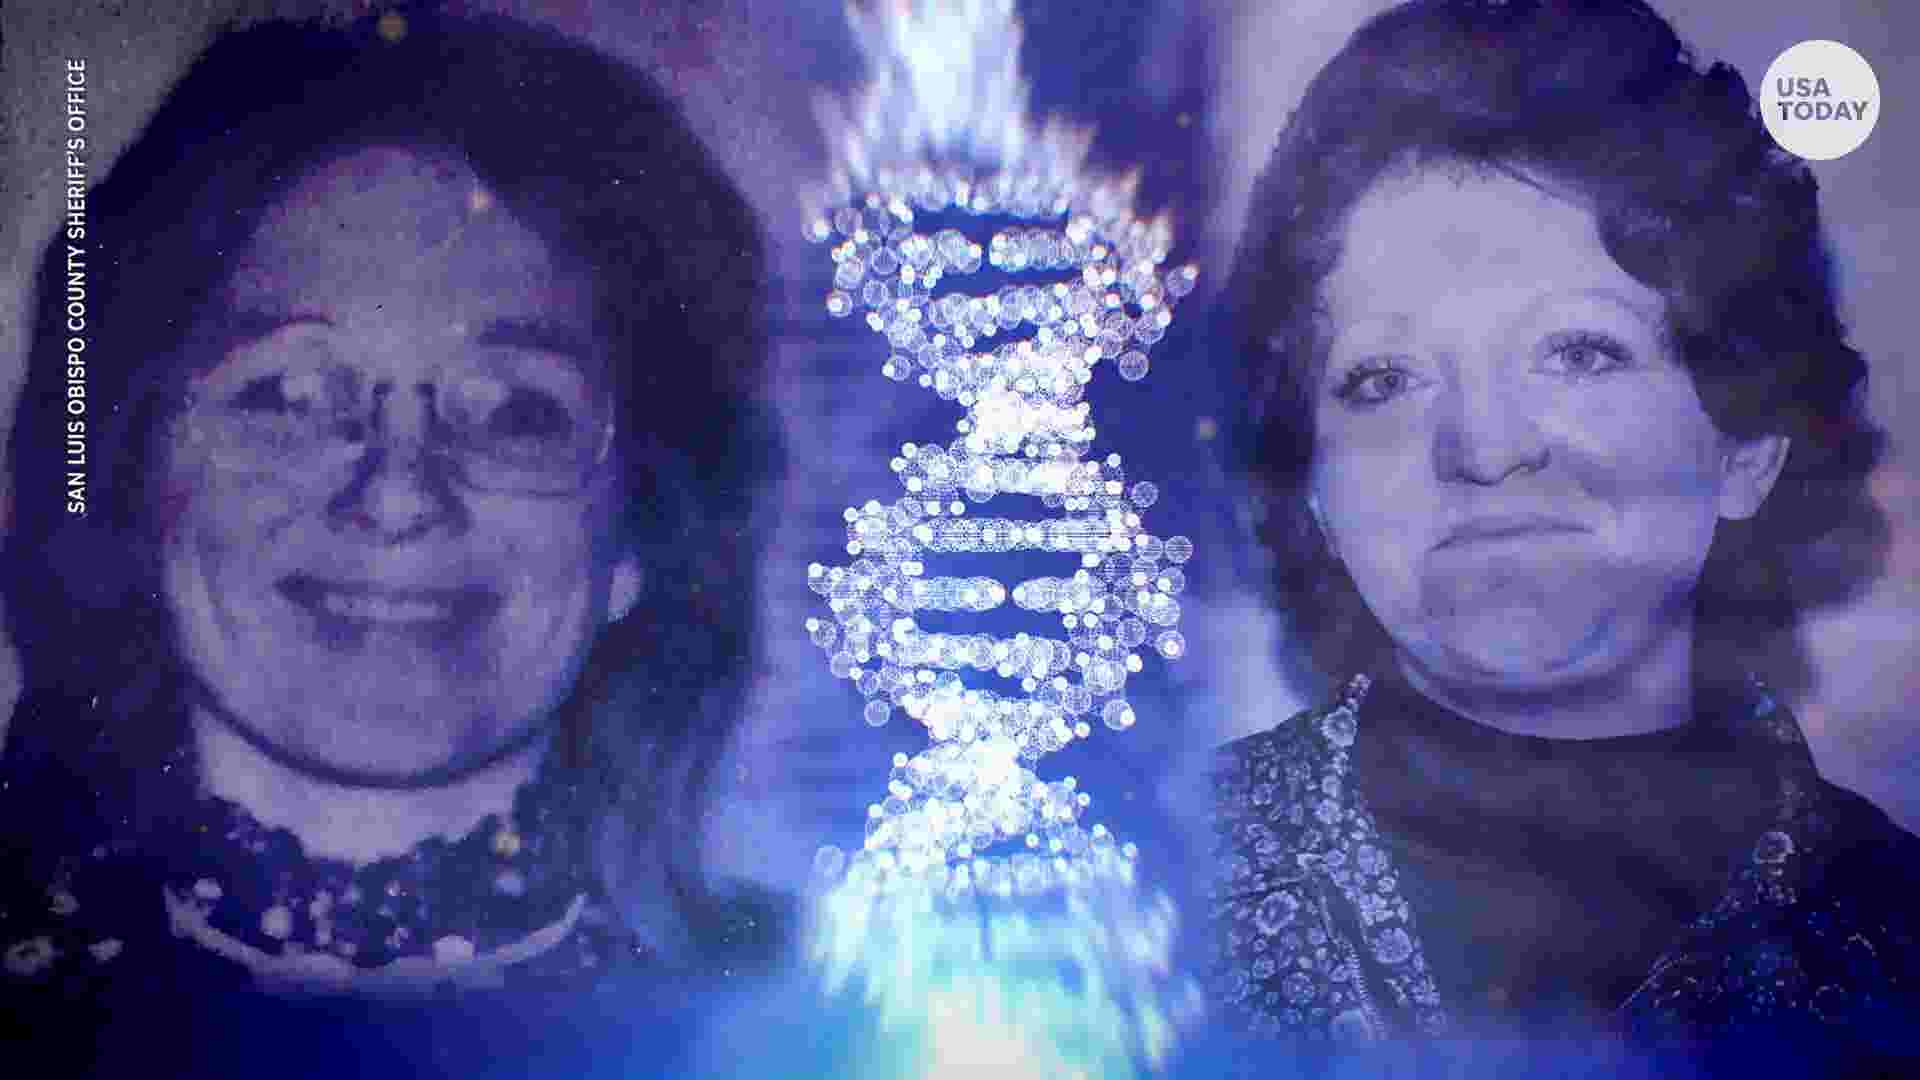 DNA from old razor solves 41-year-old cold case